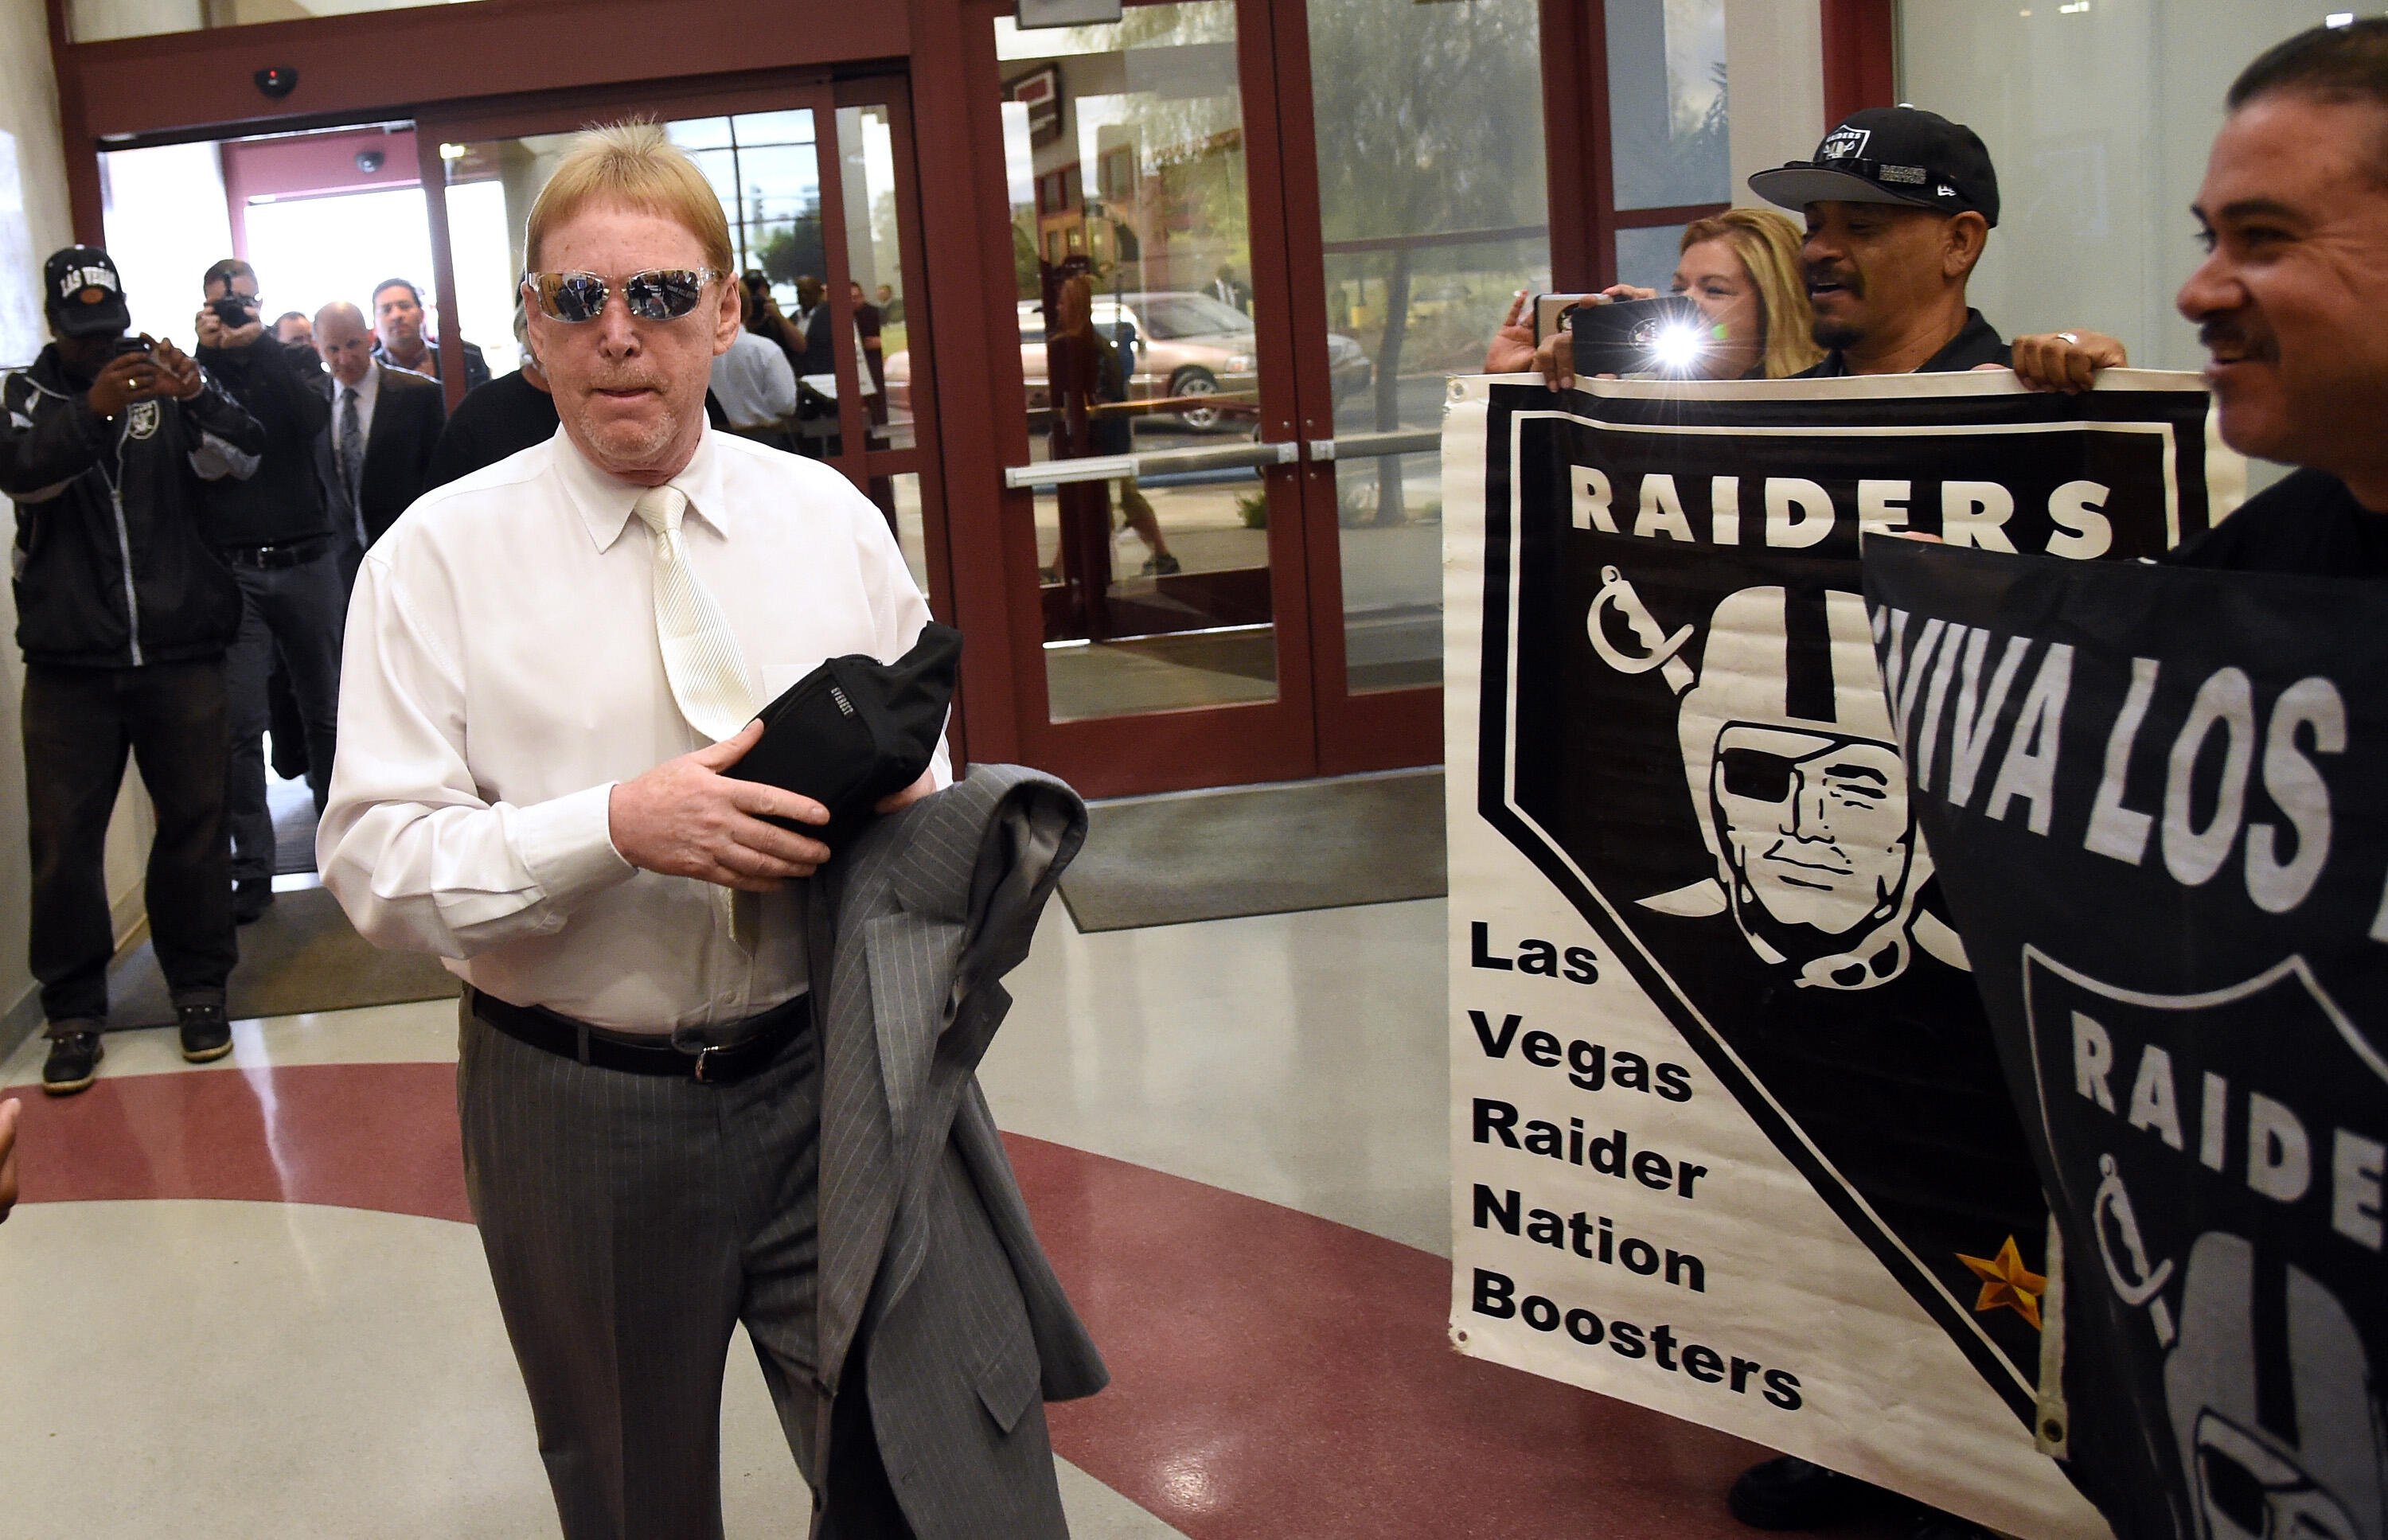 LAS VEGAS, NV - APRIL 28:  Oakland Raiders owner Mark Davis walks past fans holding Raiders signs as he arrives at a Southern Nevada Tourism Infrastructure Committee meeting at UNLV on April 28, 2016 in Las Vegas, Nevada. Davis told the committee he is wi